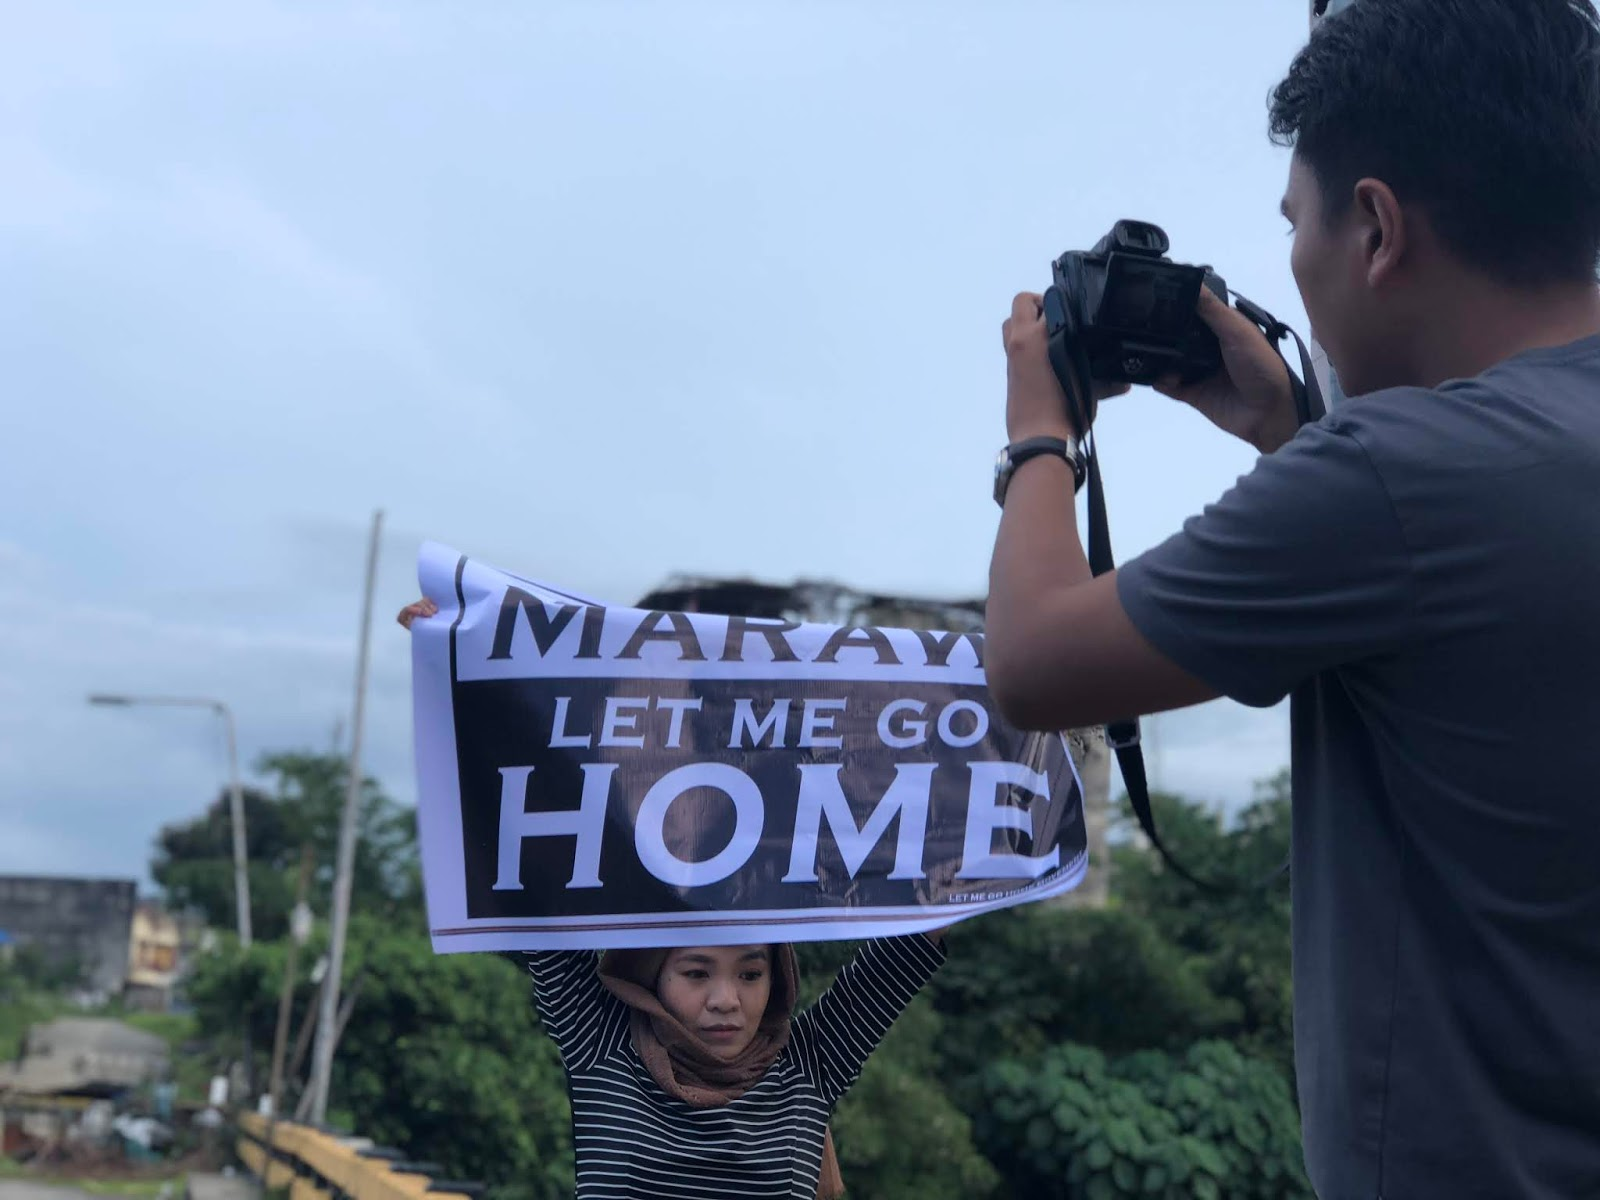 I am from Marawi Let Me Go Home